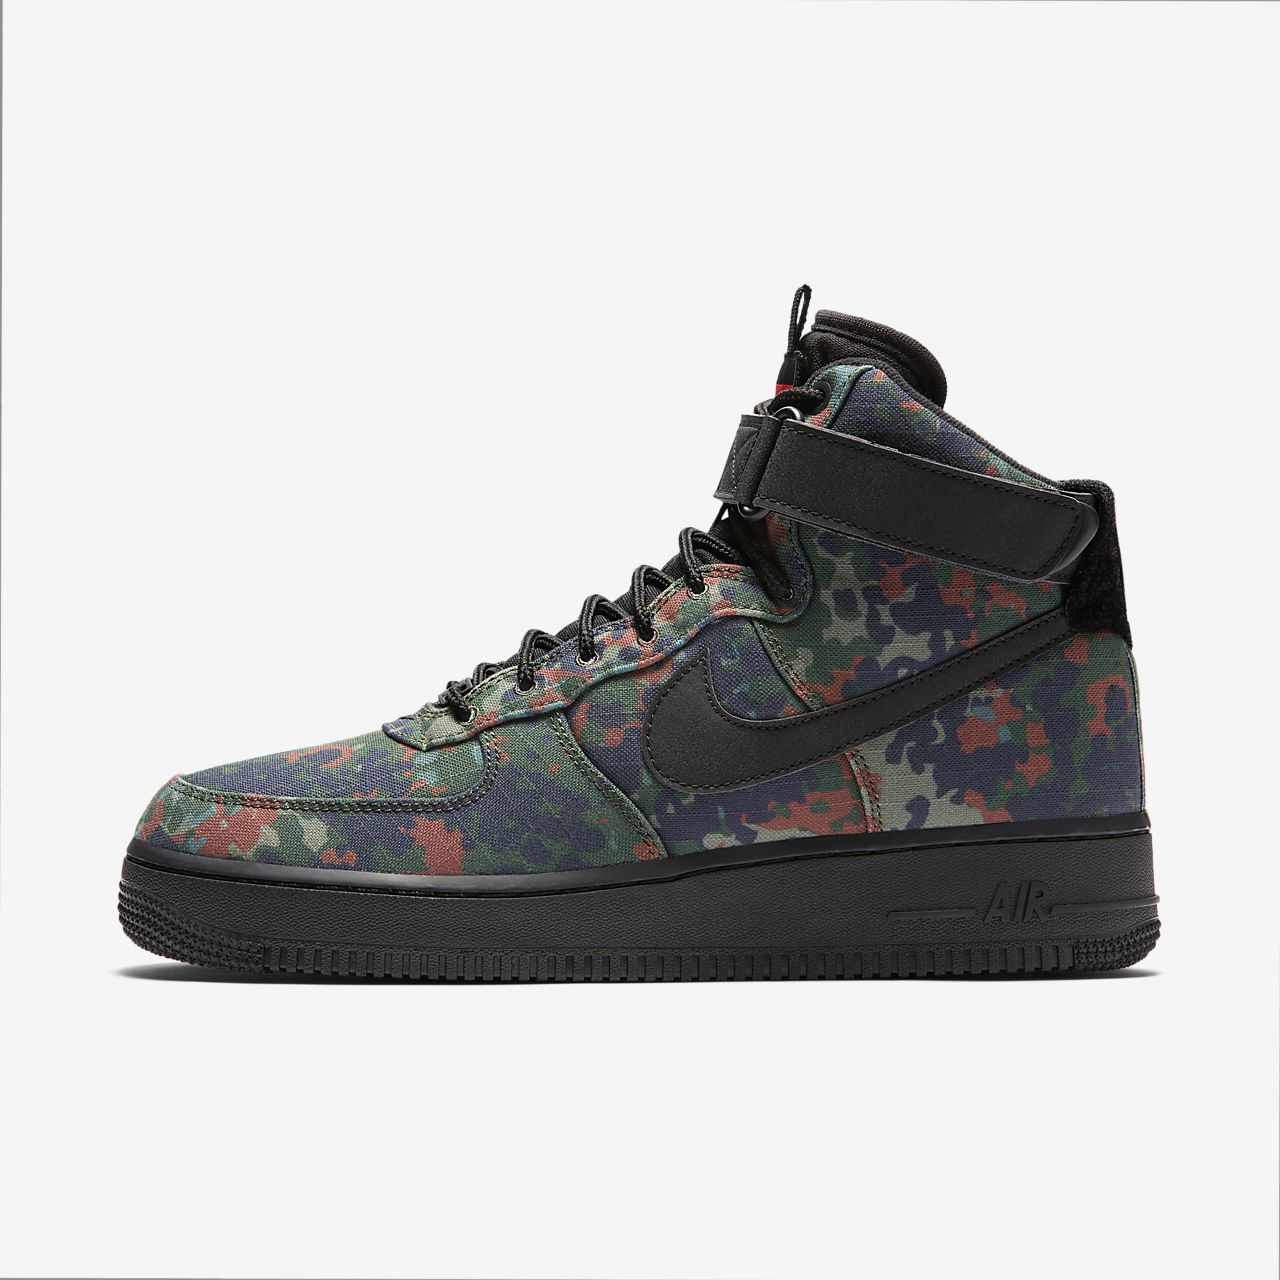 best website 0617a b5c87 ... Nike Air Force 1 High 07 LV8 Mens Shoe